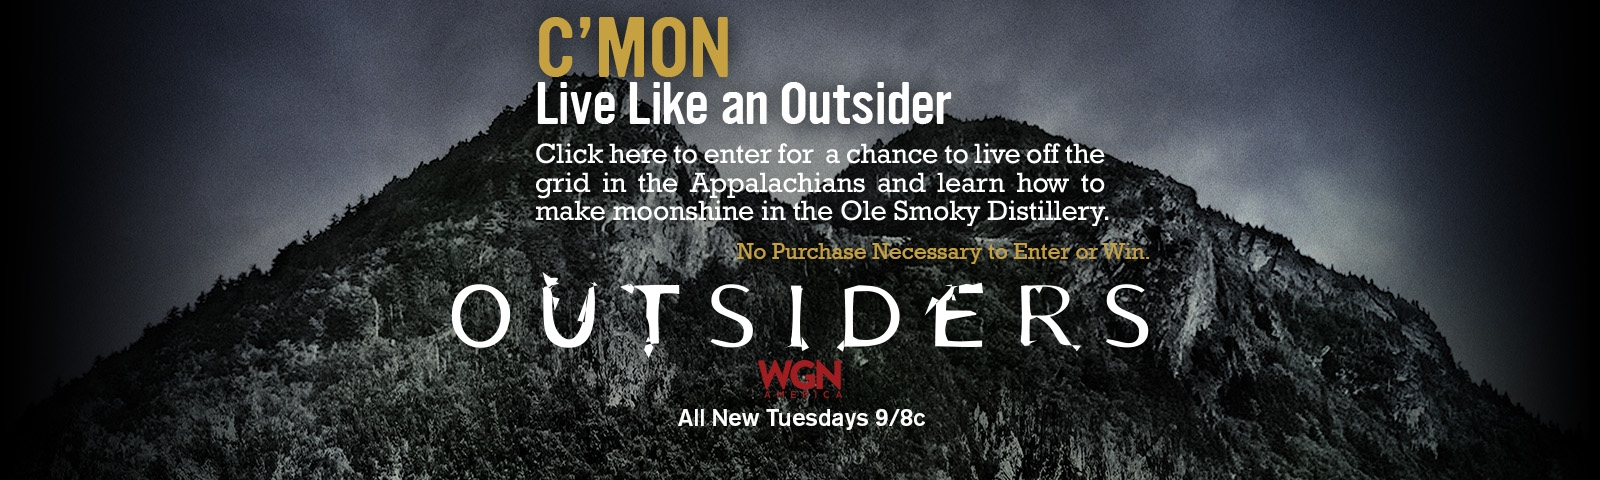 Outsiders Sweepstakes